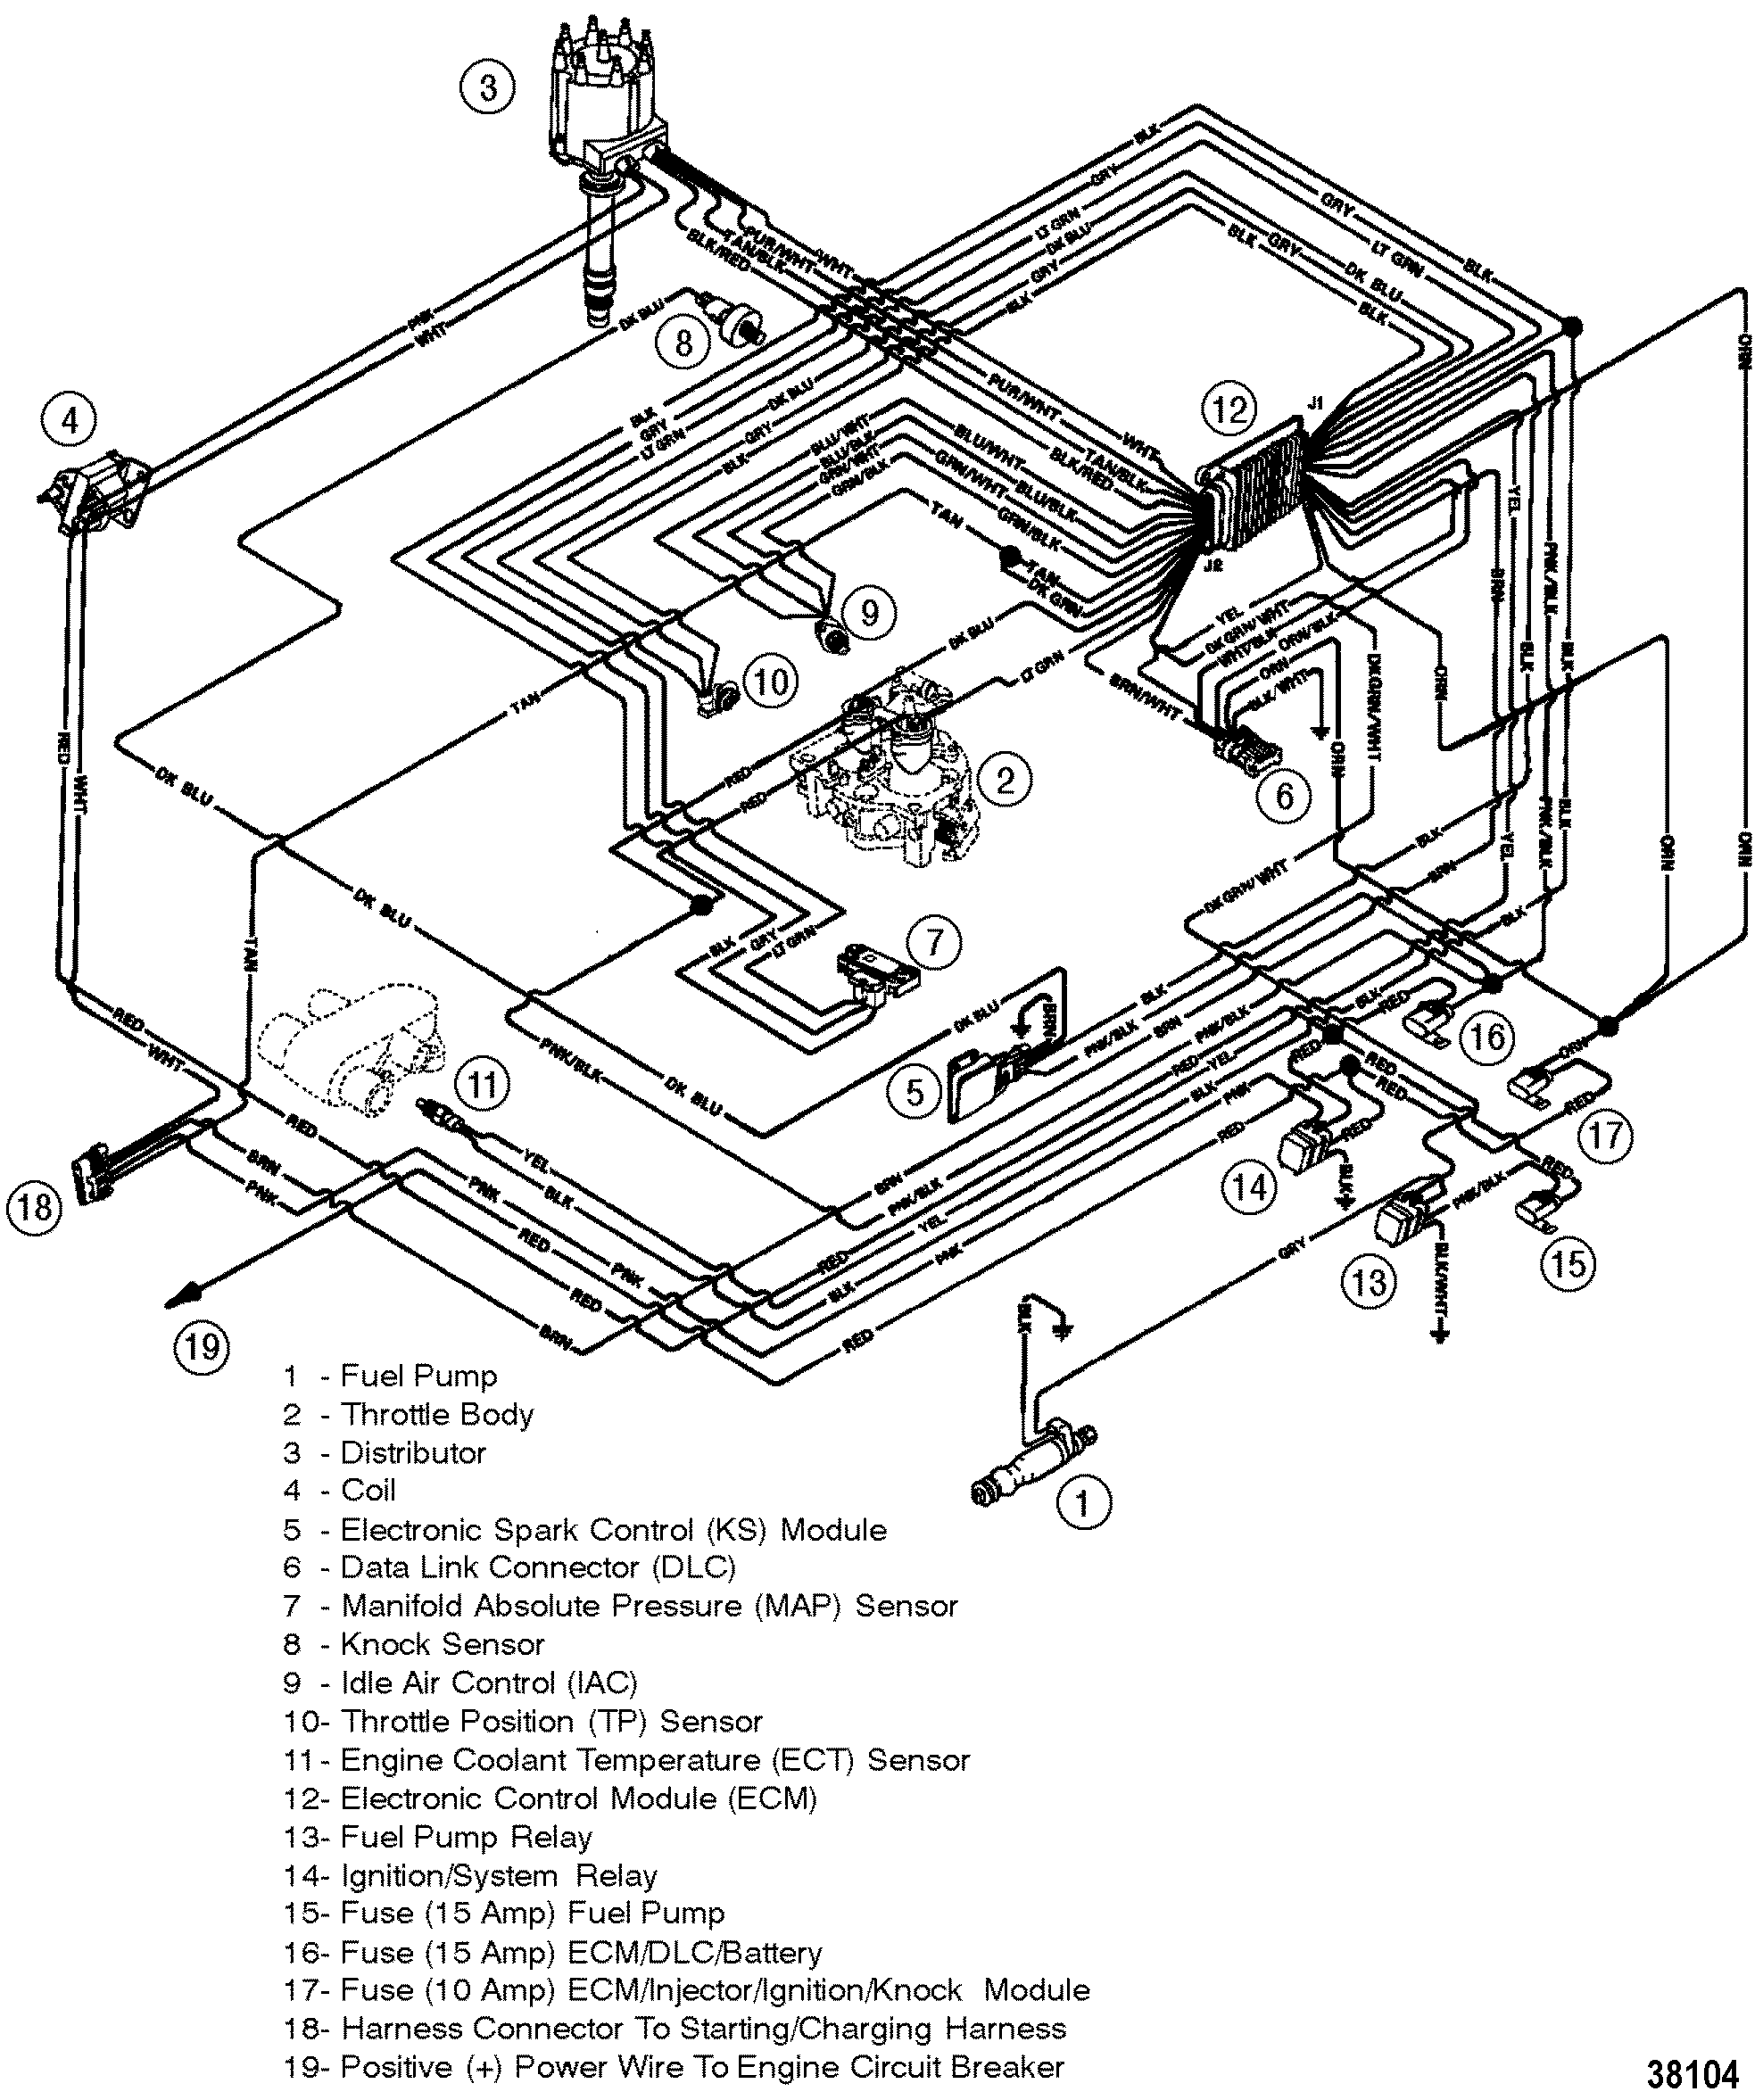 140 Mercruiser Wiring Diagram | Schematic Diagram on mercruiser 350 wiring diagram, mercruiser 5.7 engine diagram, mercruiser wiring schematic, mercruiser starter wiring, mercruiser trim pump wiring, mercruiser 3.0 parts diagram, 4.3 mercruiser parts diagram, mercruiser 3 0 wiring, mercruiser outdrive wiring diagram, mercruiser 3 0lx block diagram, mercruiser 470 wiring diagram, mercruiser shift interrupter switch wiring, mercruiser 3.0 firing order diagram, mercruiser engine wiring diagram, mercruiser boat wiring, mercruiser trim wiring diagram, mercruiser 5.7 wiring-diagram, mercruiser electrical system wiring diagrams, mercruiser one wire alternator wiring, mercruiser diesel wiring diagram,